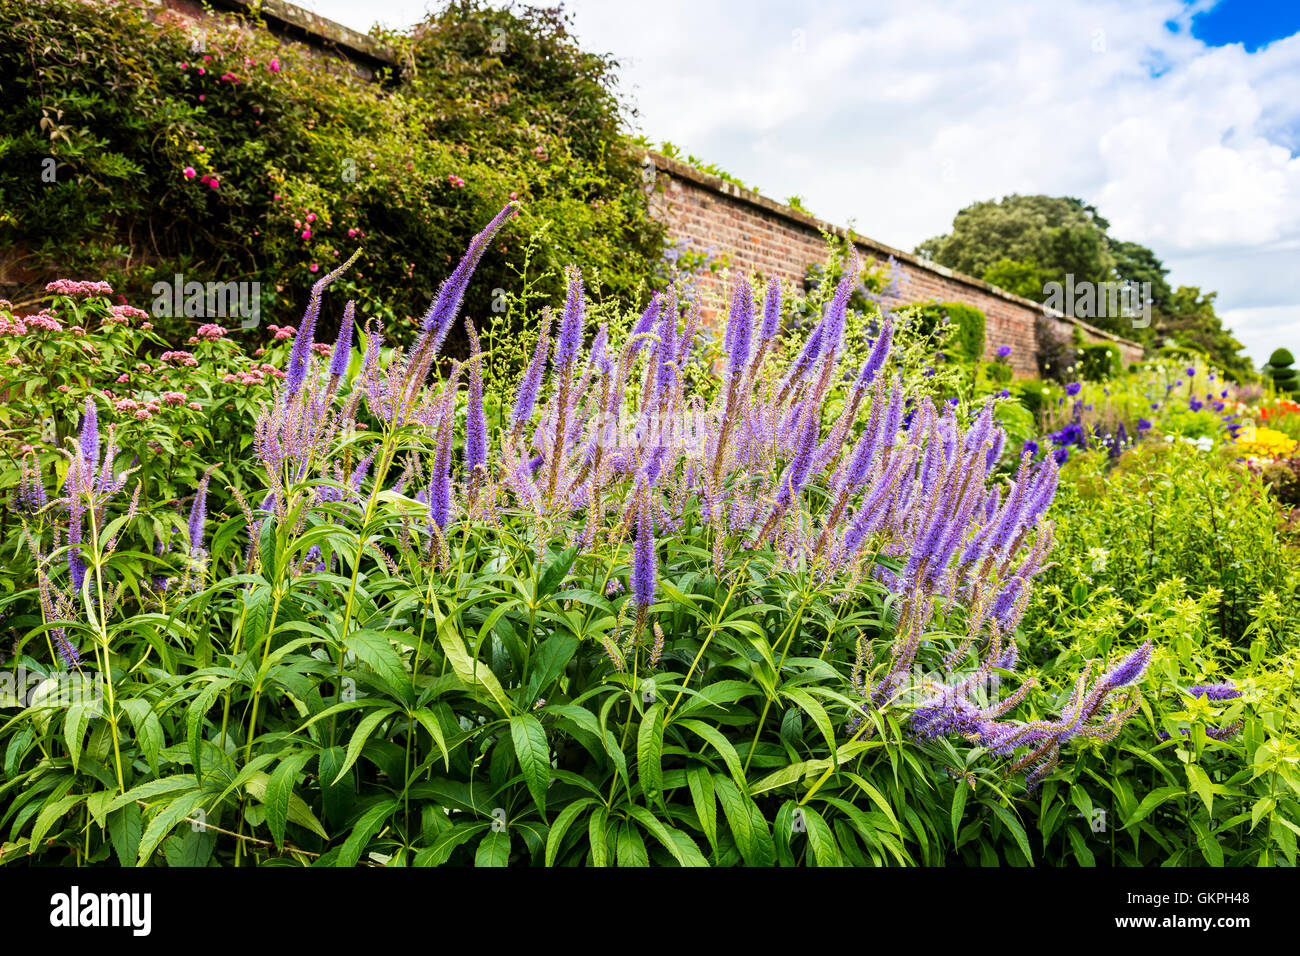 Tall blue flowering plant Agastache in a herbaceous border. - Stock Image